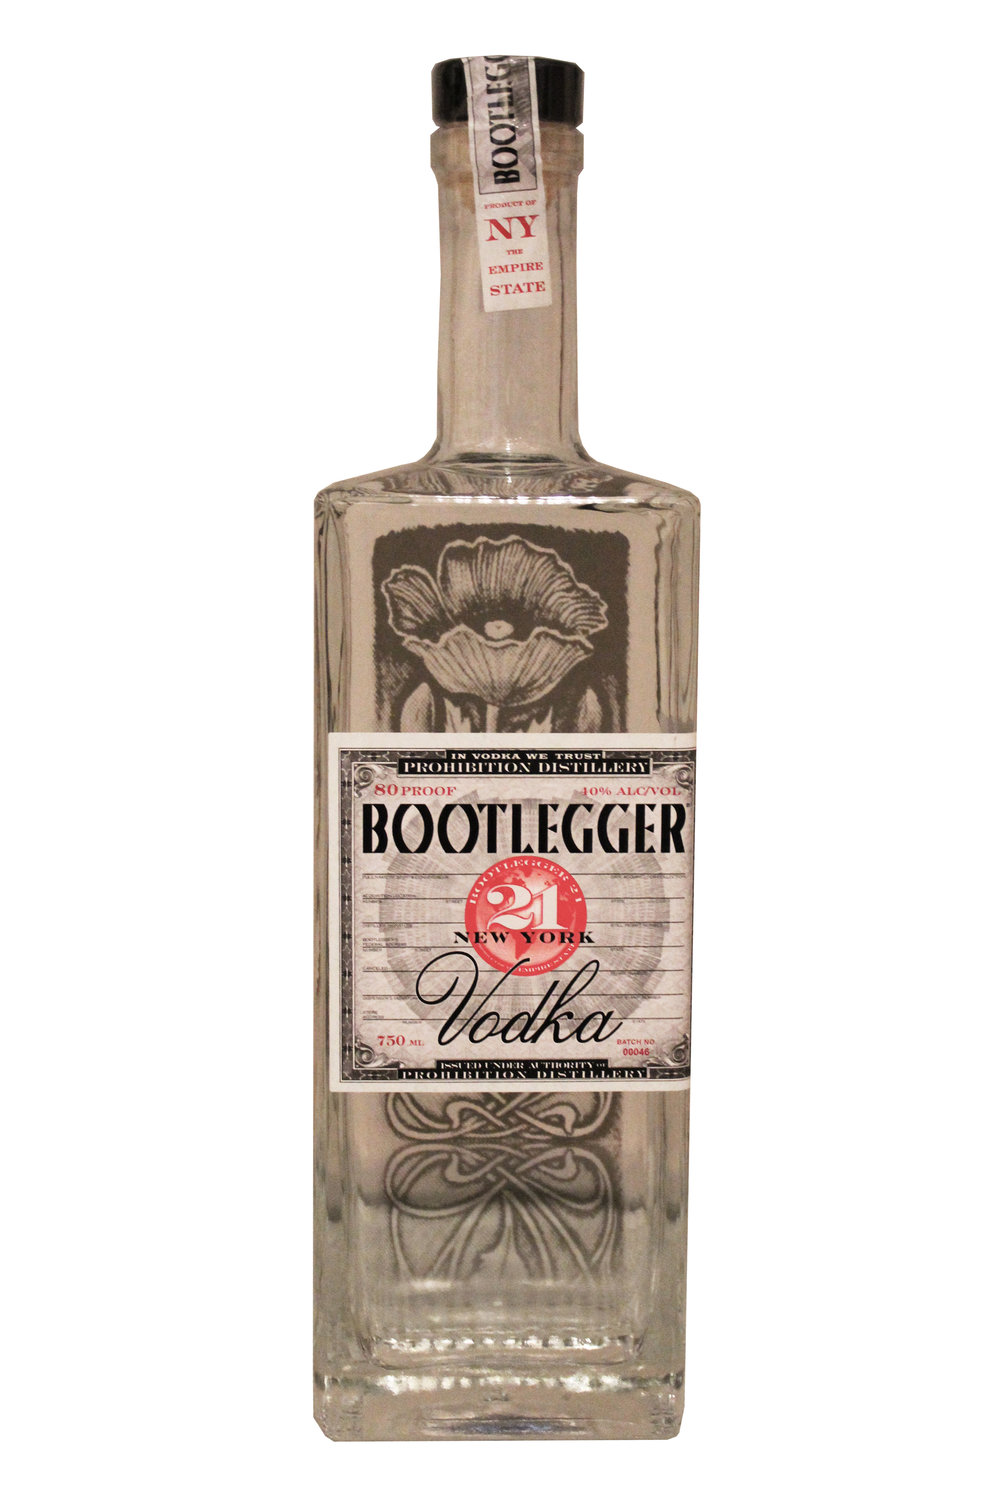 Handcrafted Gluten Free Vodka Bootlegger, New York